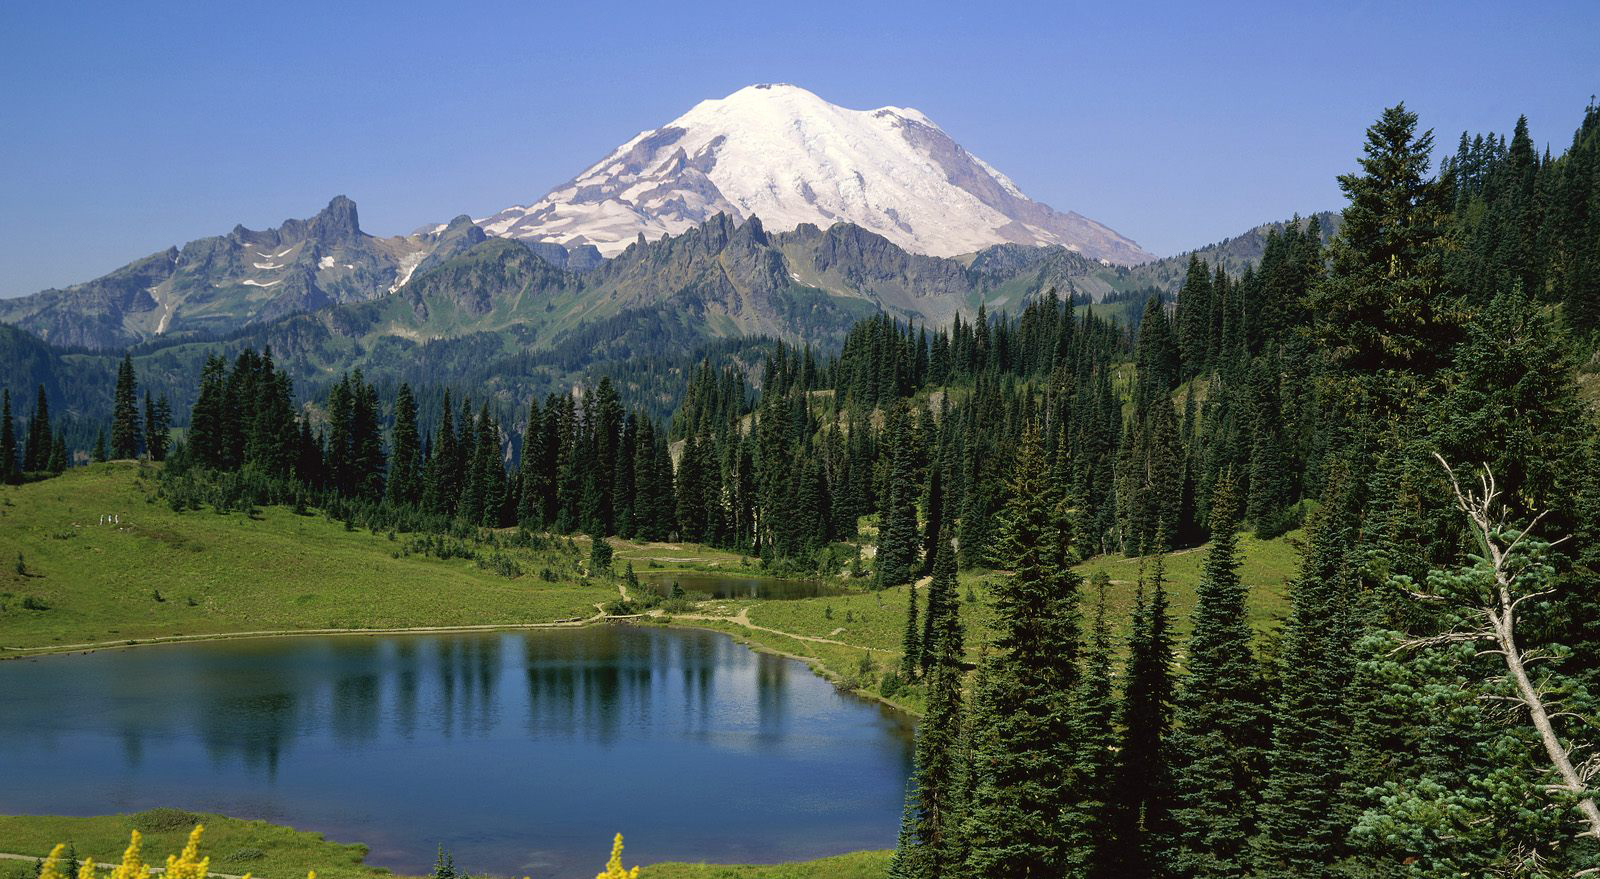 mount rainier christian personals This may contain online profiles, dating websites, forgotten social media accounts, and other potentially embarrassing profiles mount rainier christian macauley.